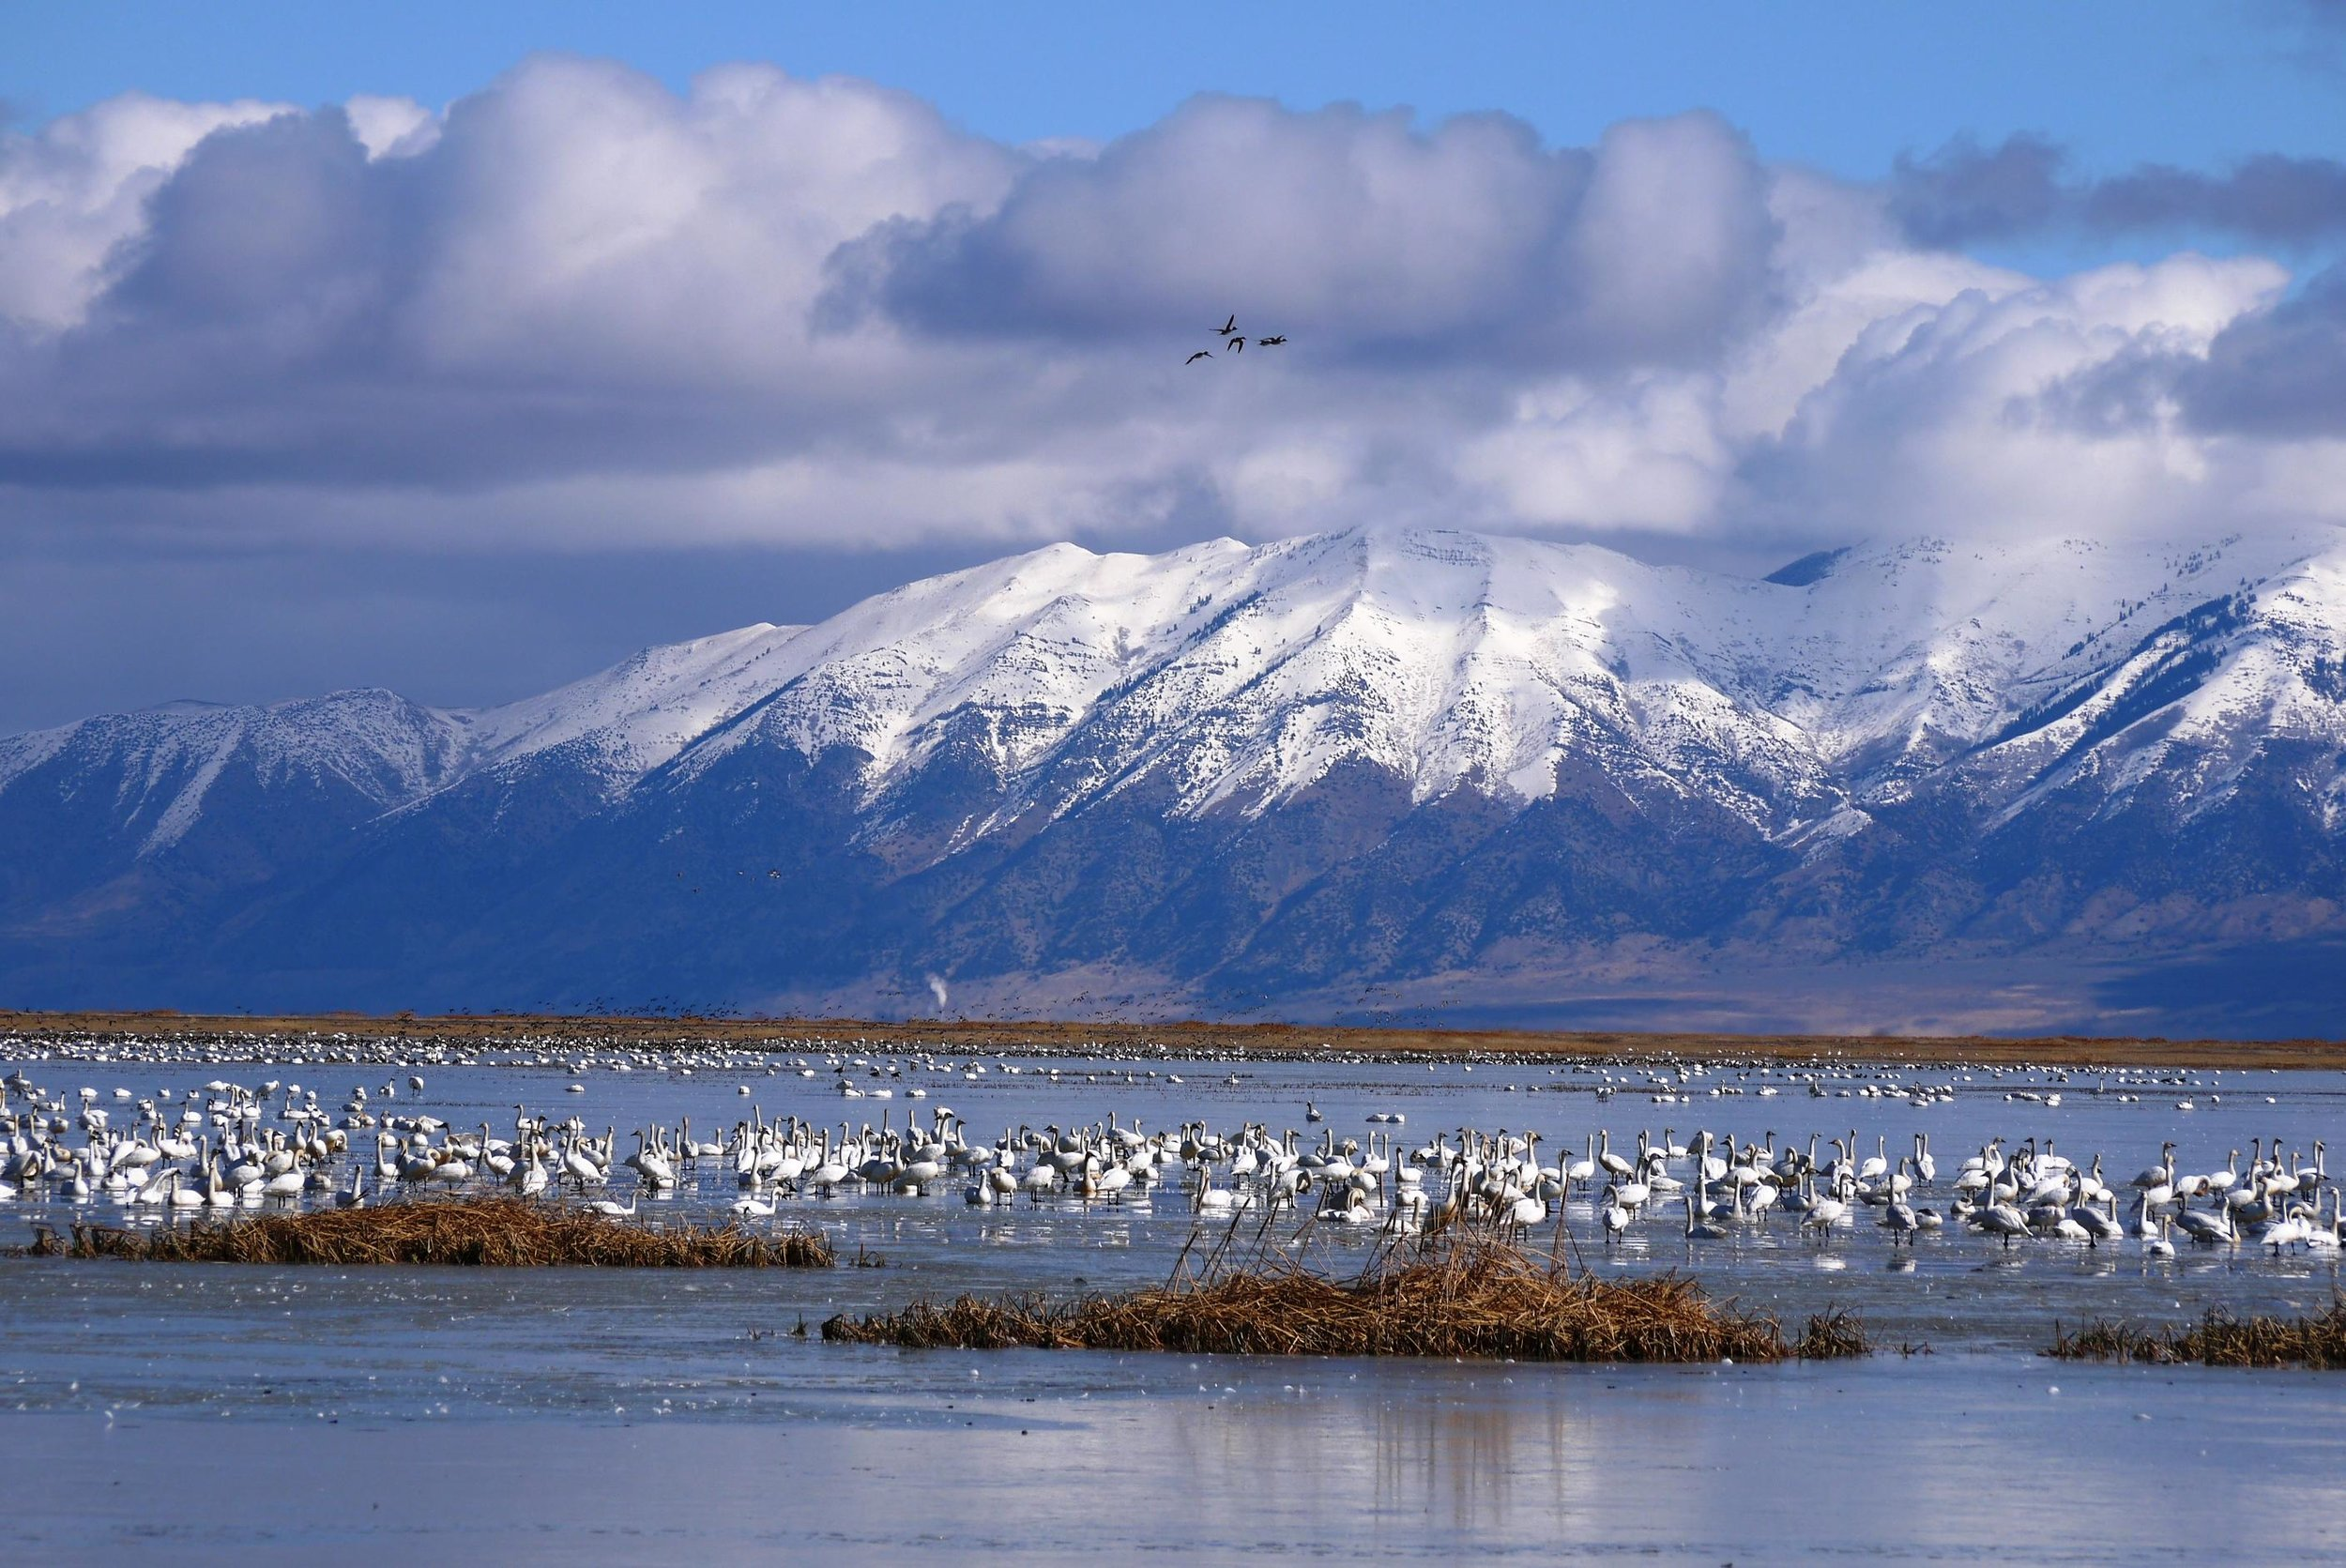 Utah's Great Salt Lake has lost half its water, thanks to thirsty humans